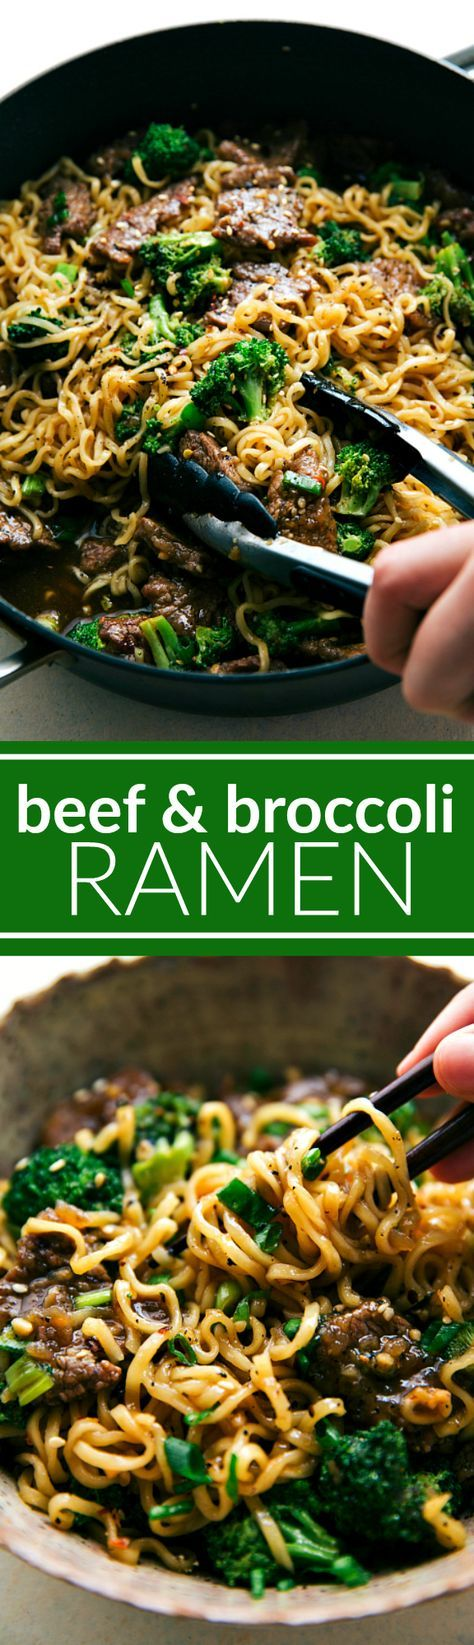 Skillet Beef and Broccoli Ramen Skillet Beef and Broccoli Ramen